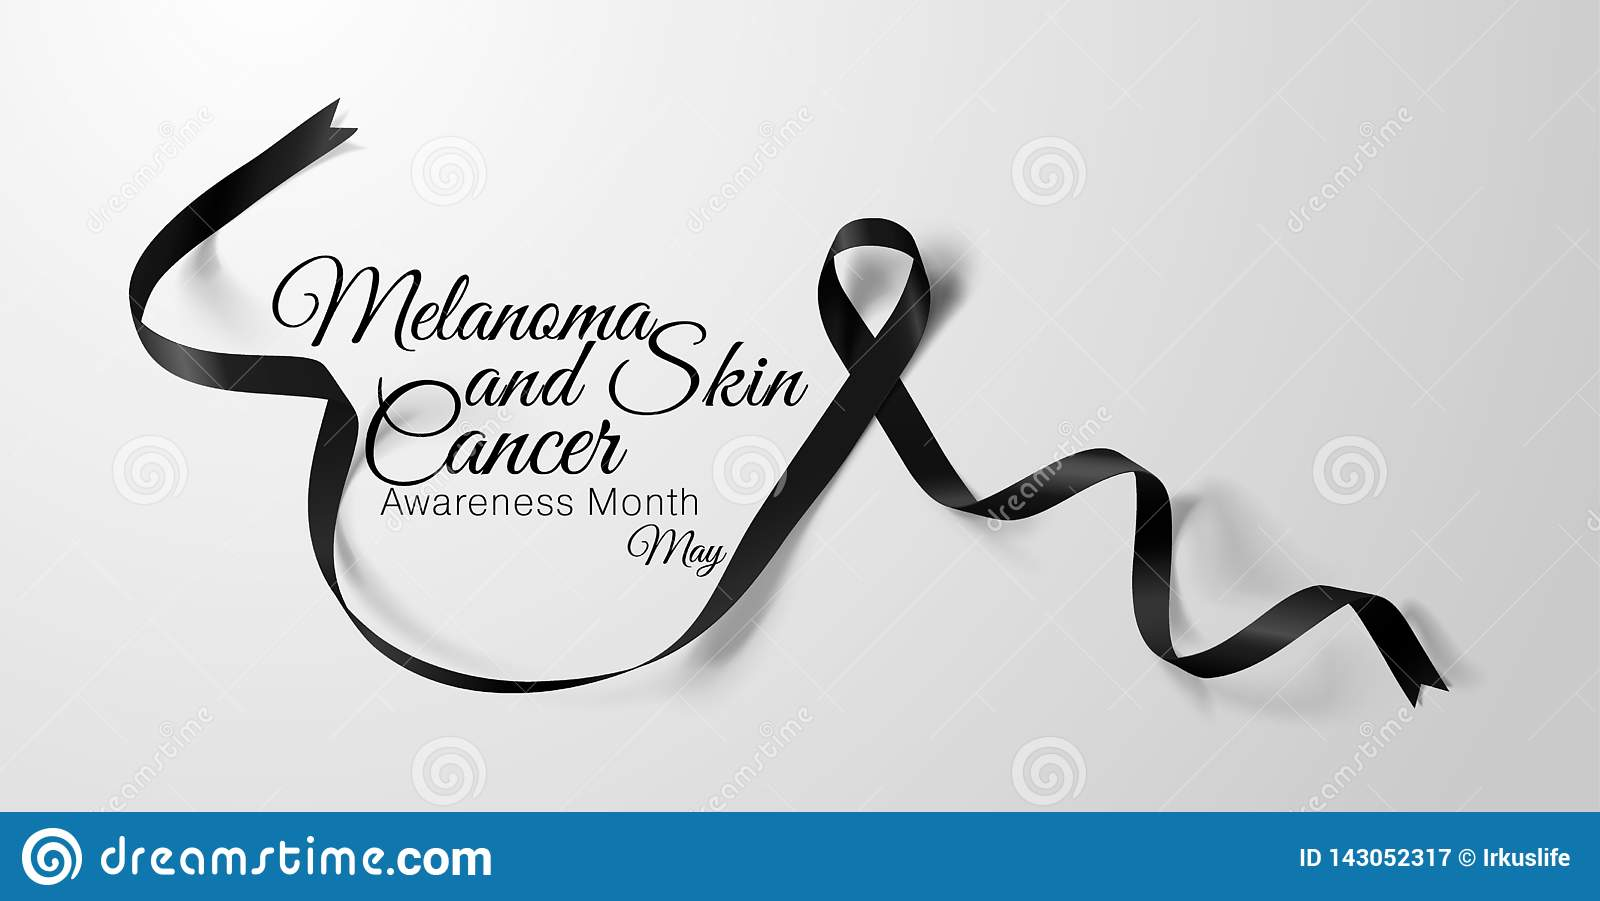 Melanoma And Skin Cancer Awareness Calligraphy Poster Design Realistic Black Ribbon May Is Cancer Awareness Month Stock Vector Illustration Of Icon Loop 143052317